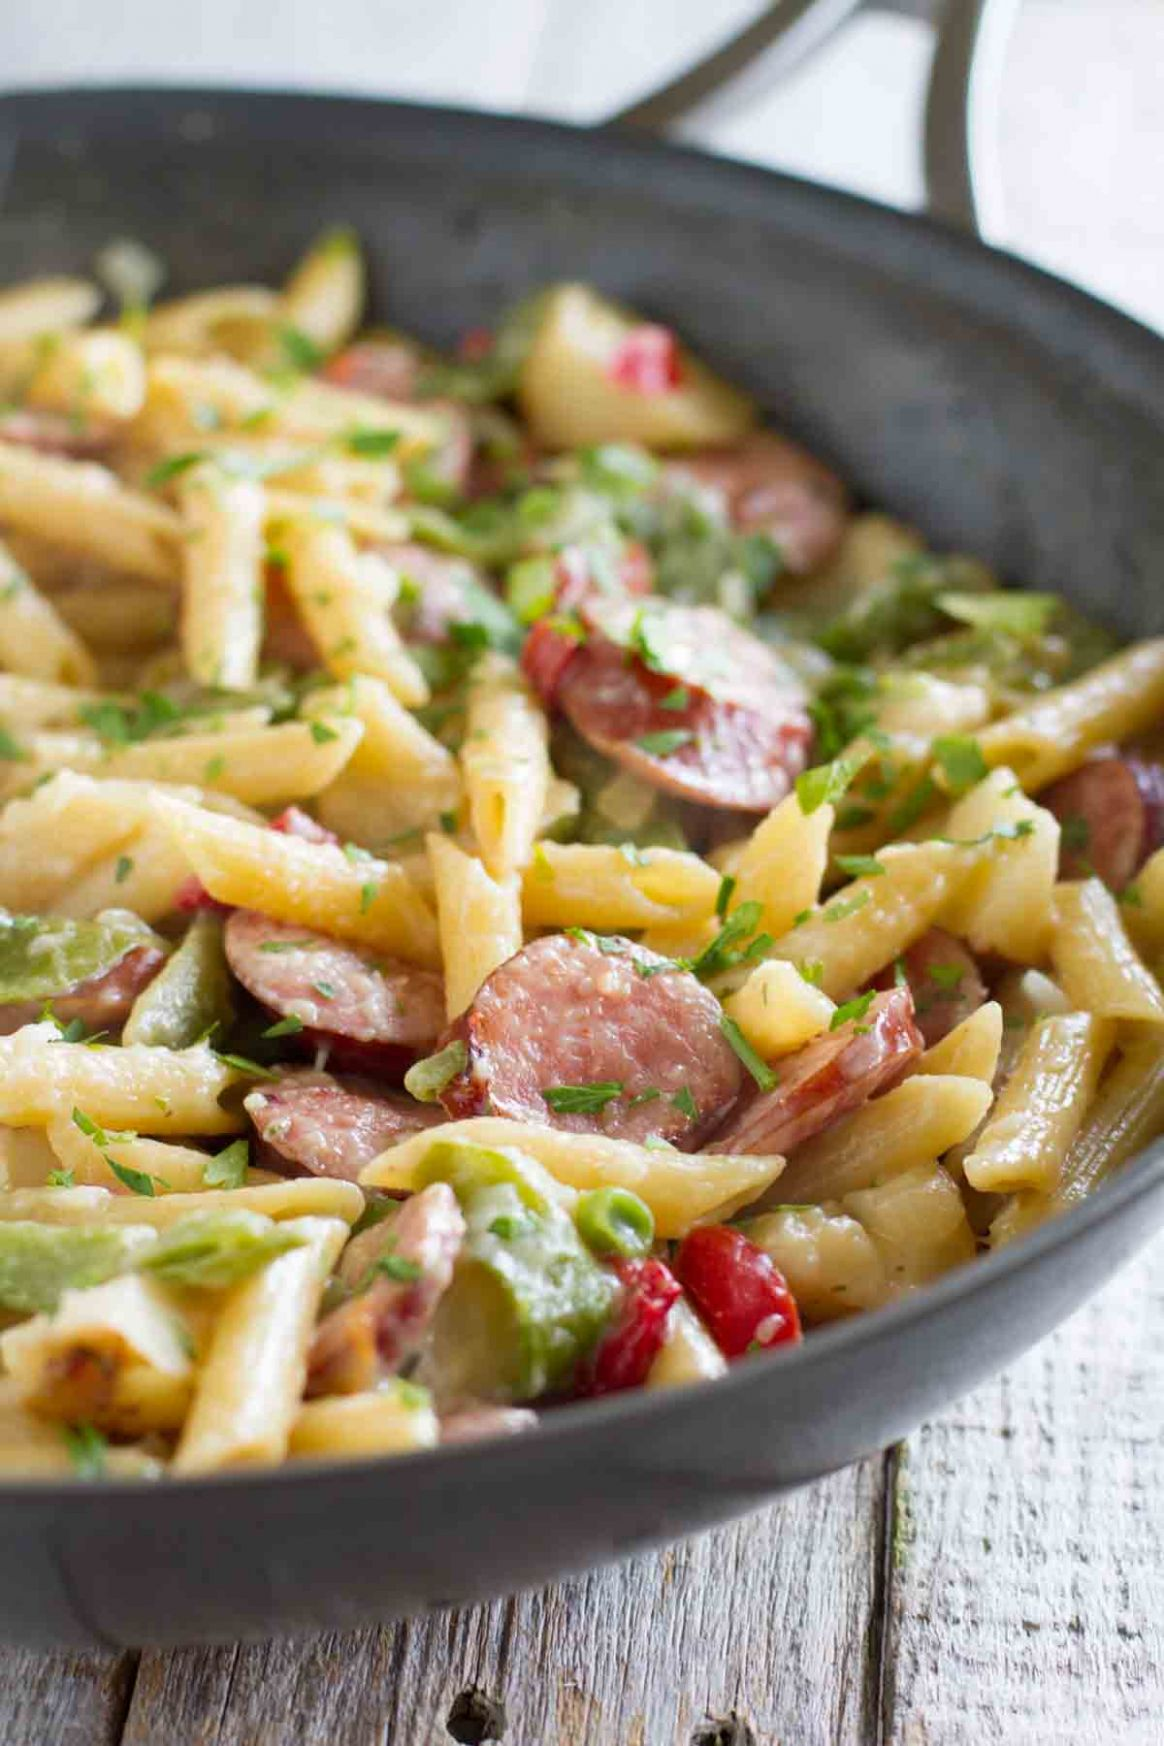 Skillet Pasta with Sausage - Recipes With Summer Sausage And Pasta